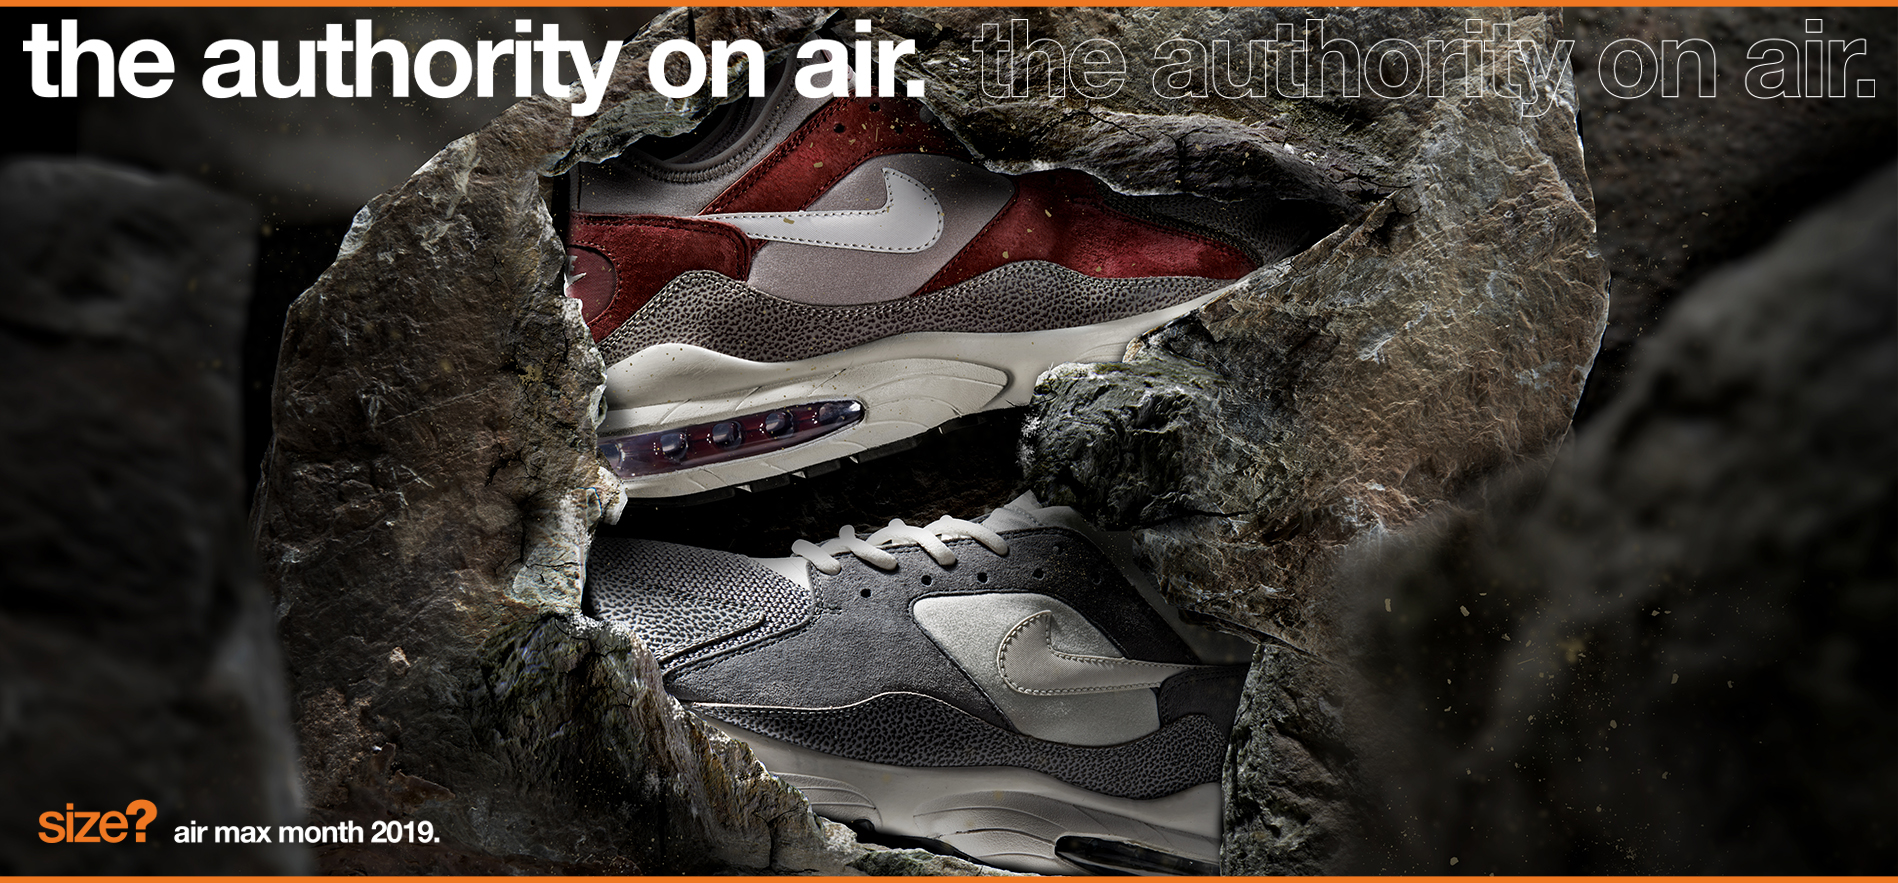 the authority on air: Air Max 93 'Metals'